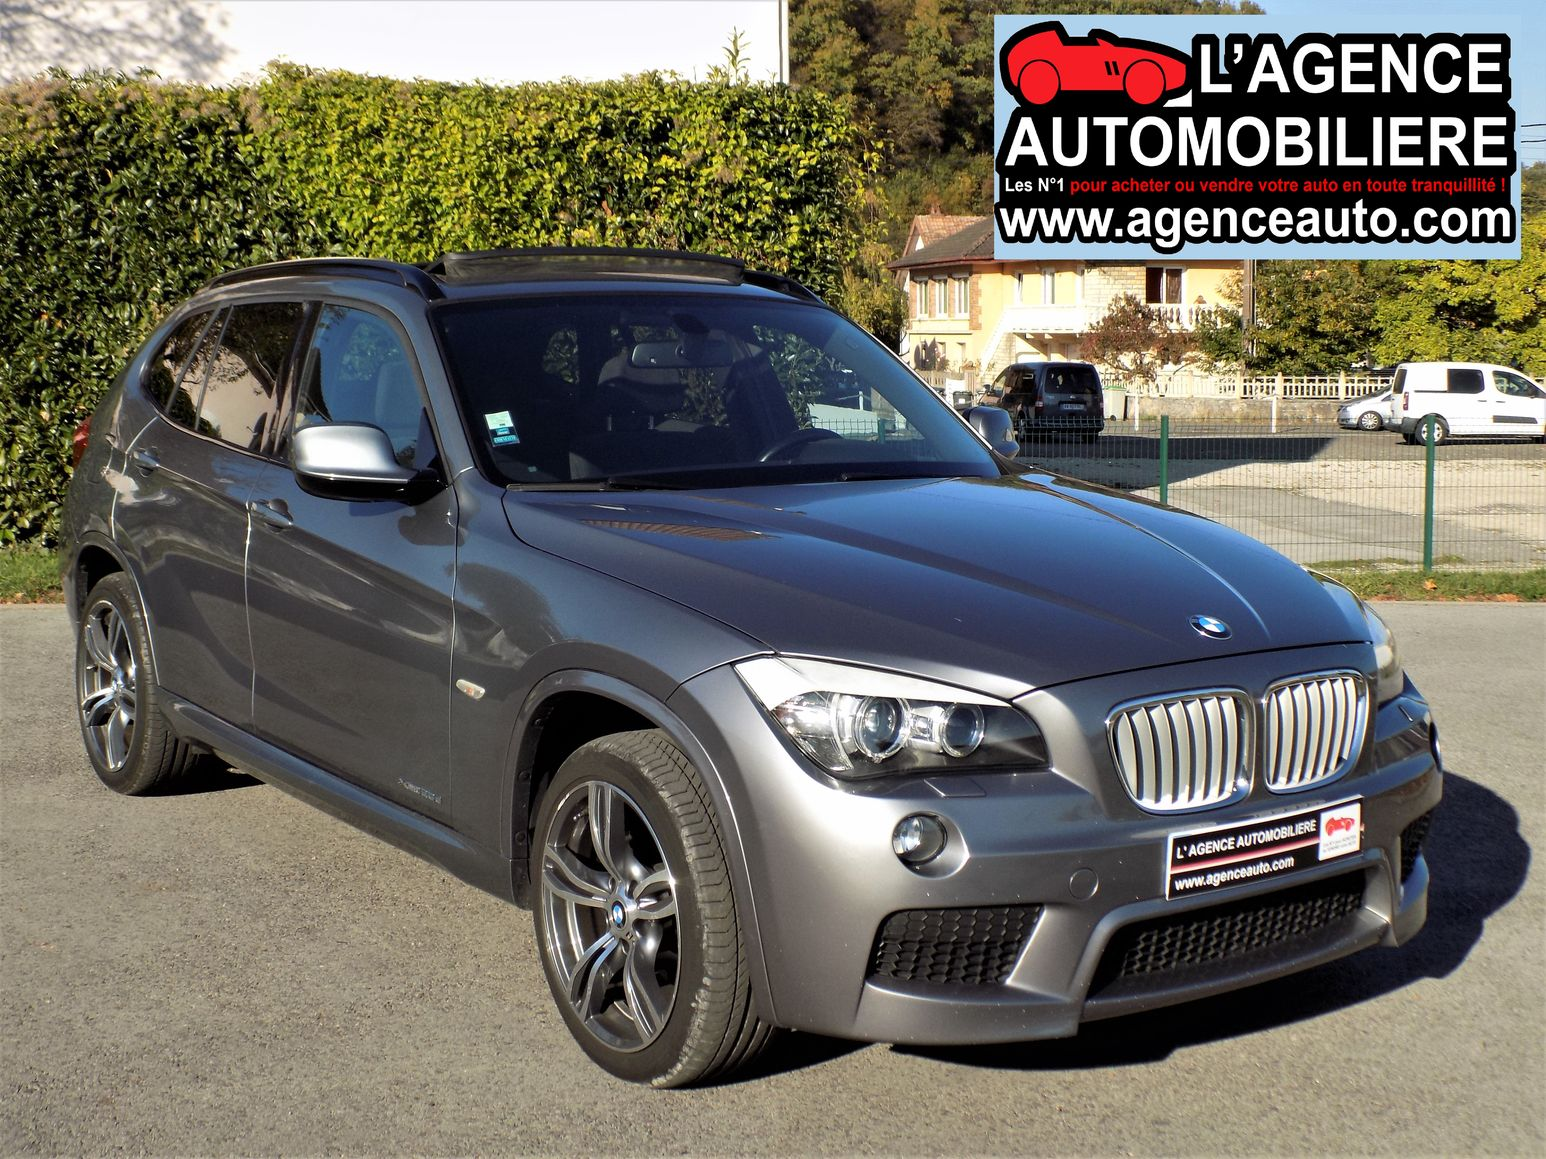 bmw x1 2 0 d 177 cv xdrive pack m occasion montbeliard pas cher voiture occasion doubs 25400. Black Bedroom Furniture Sets. Home Design Ideas